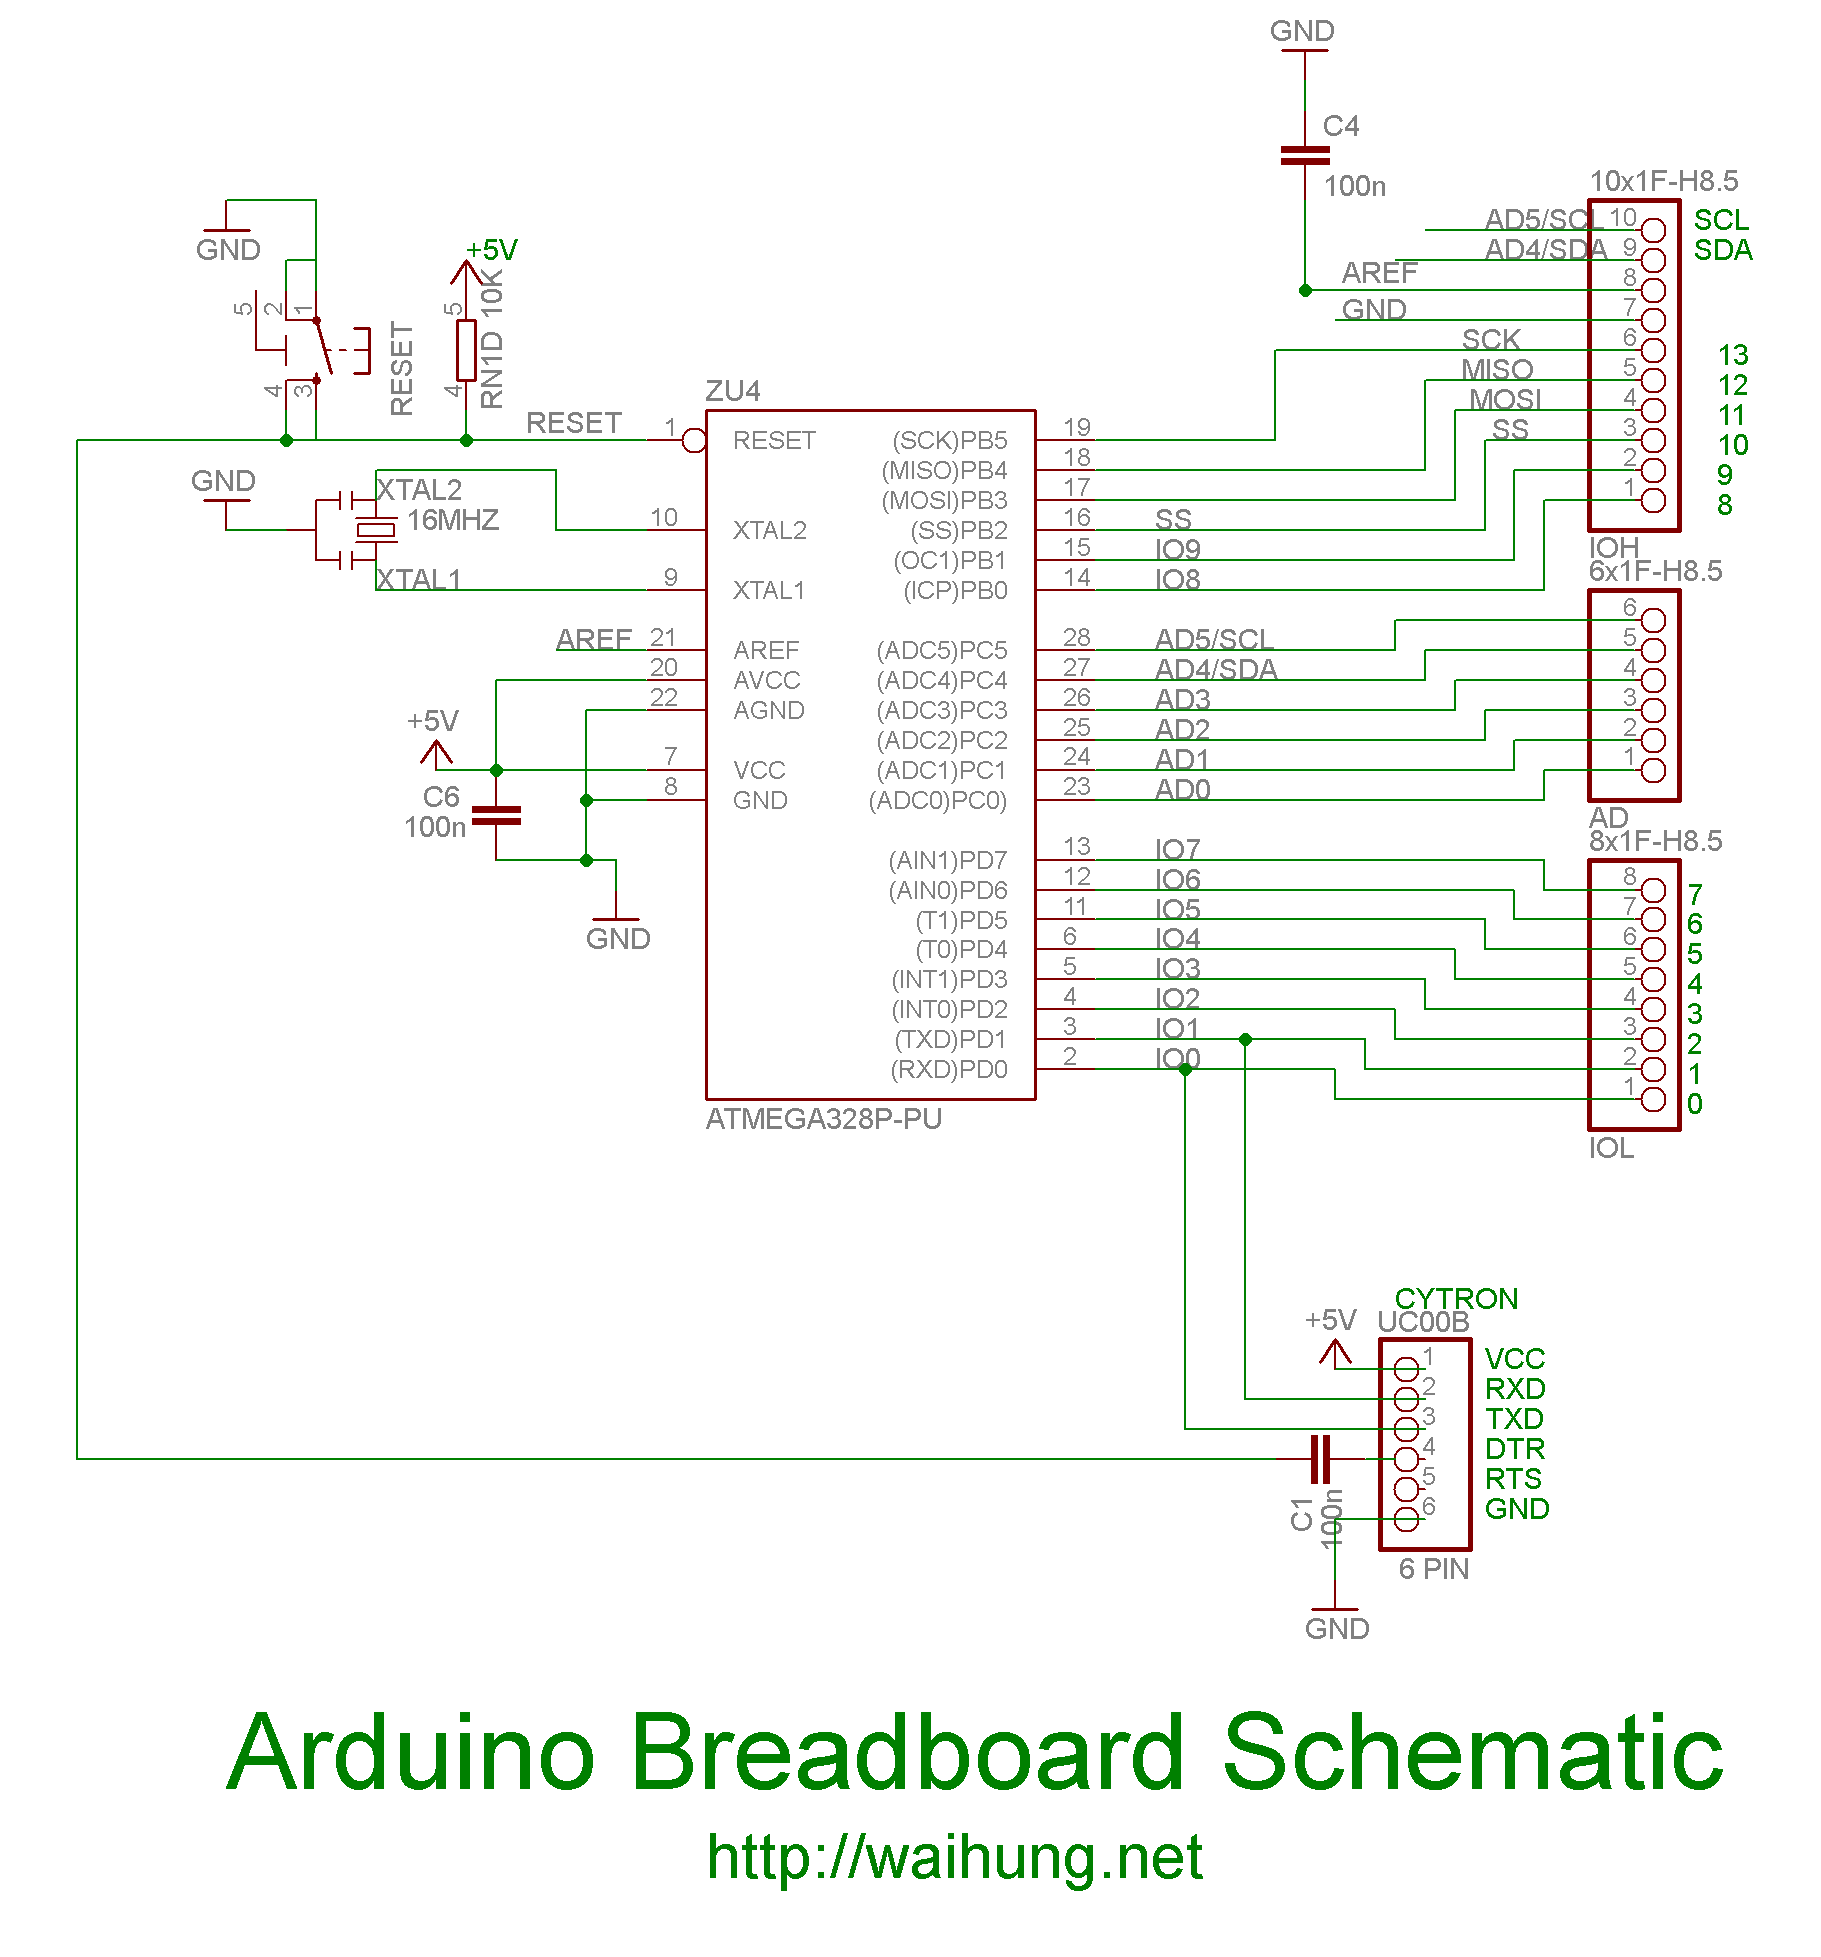 arduino on breadboard - schematic